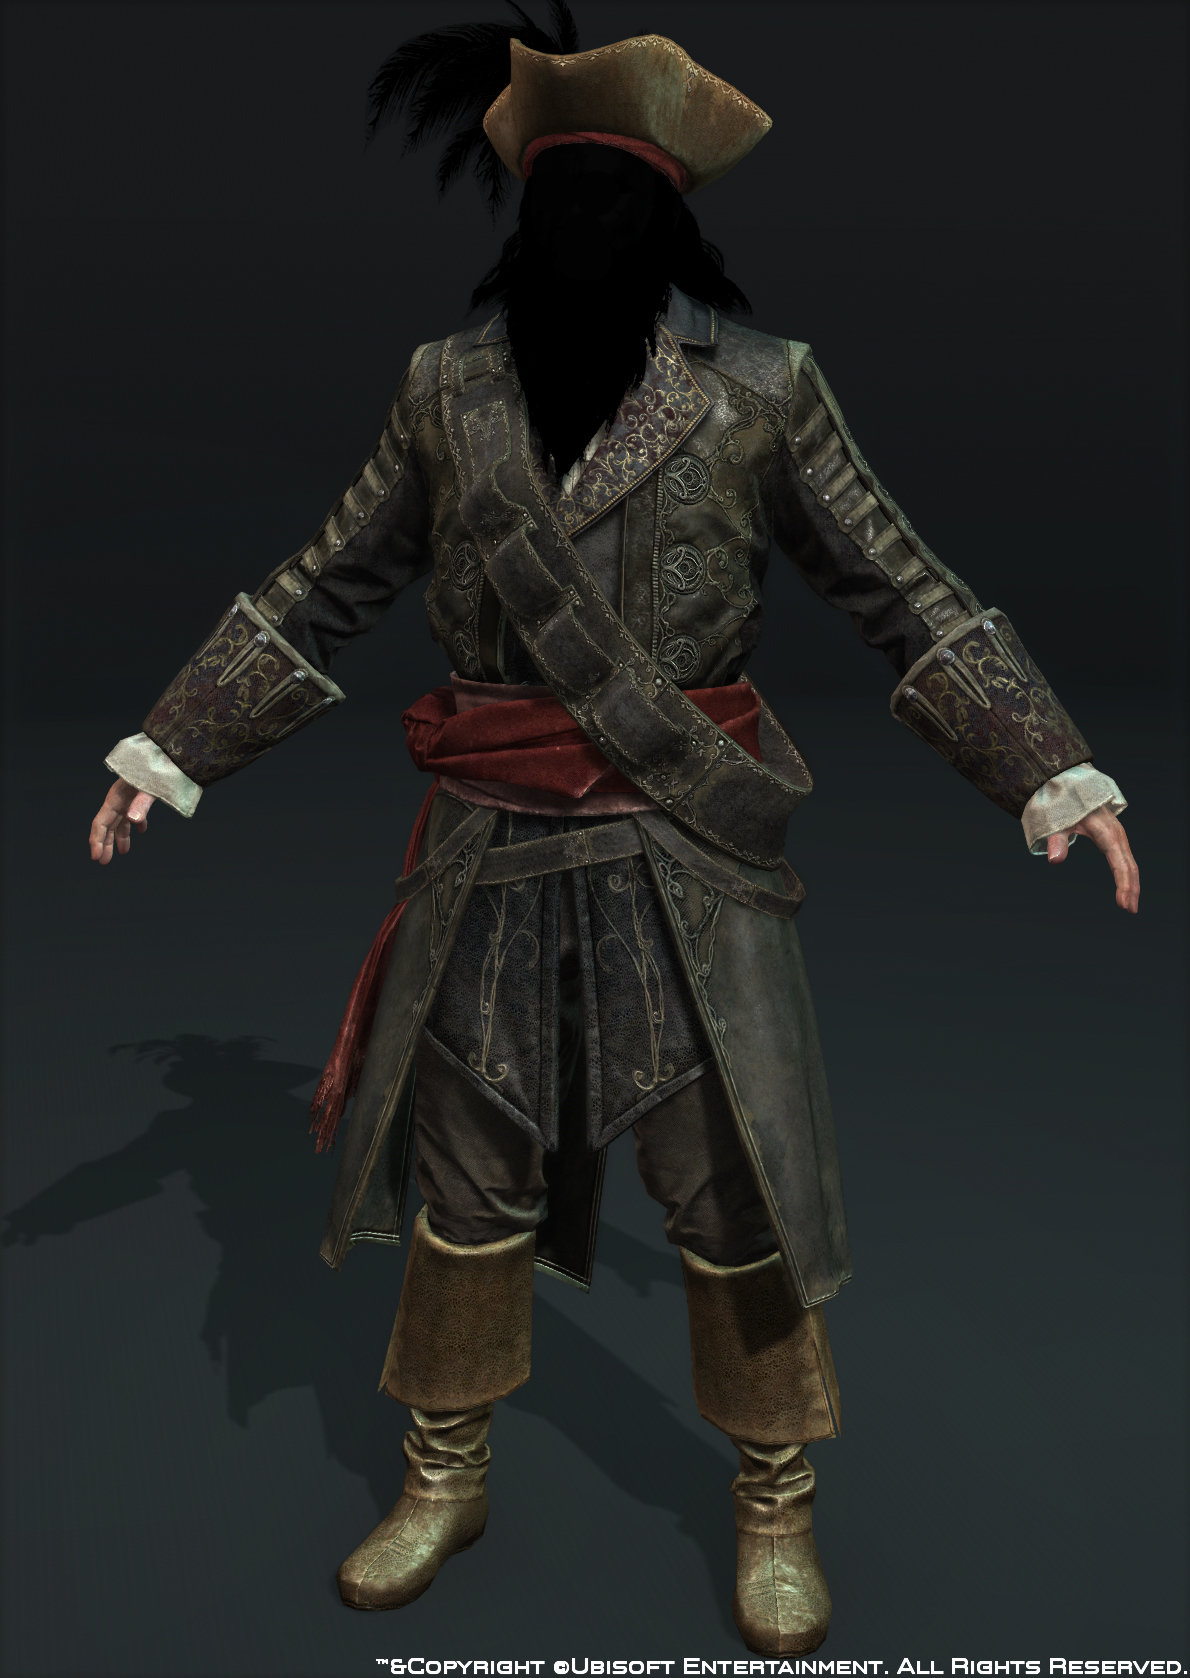 Body blackbeard front